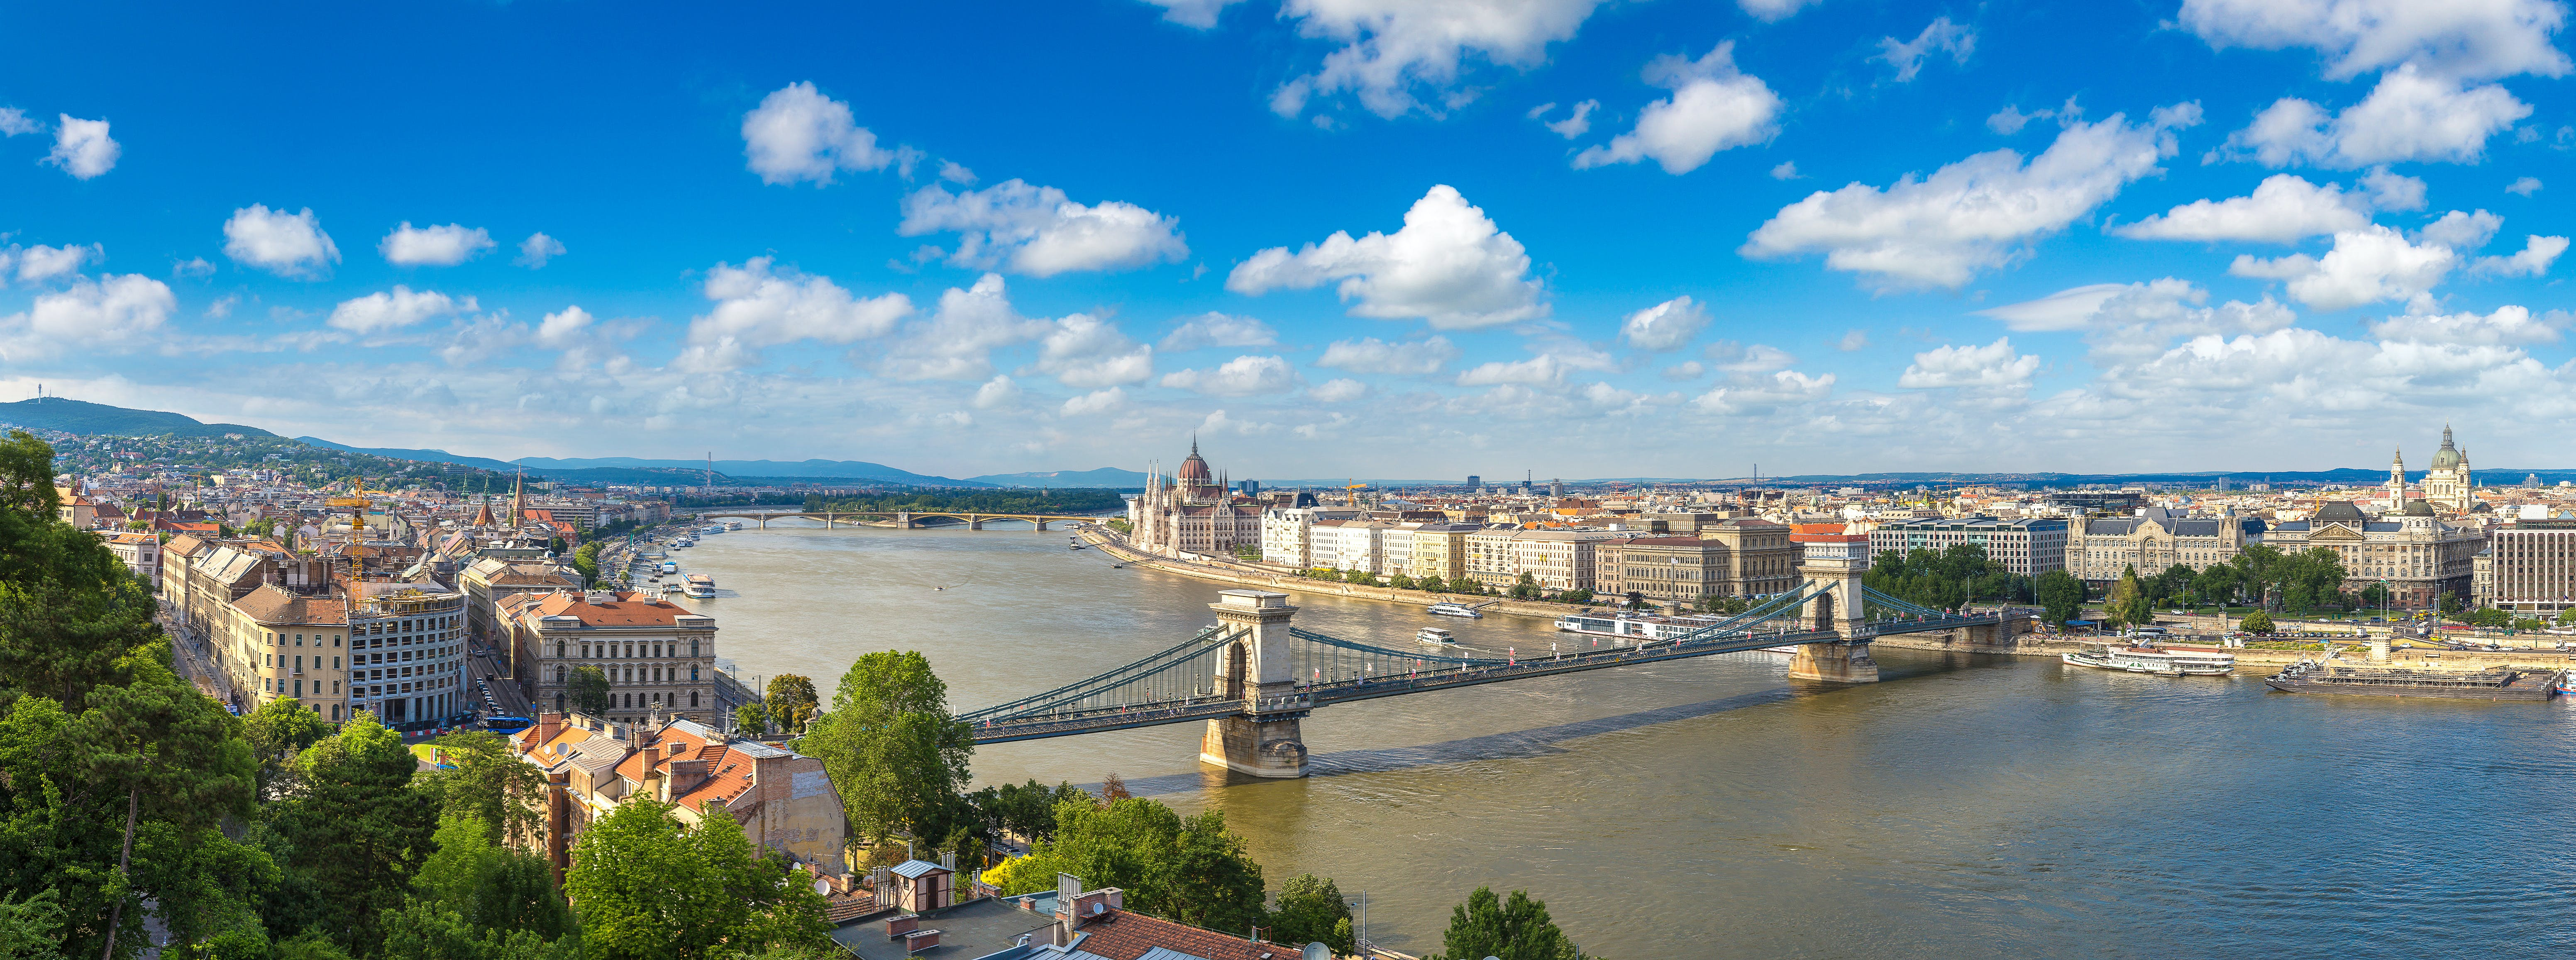 Budapest dinner cruise and Szechenyi thermal baths combo tour